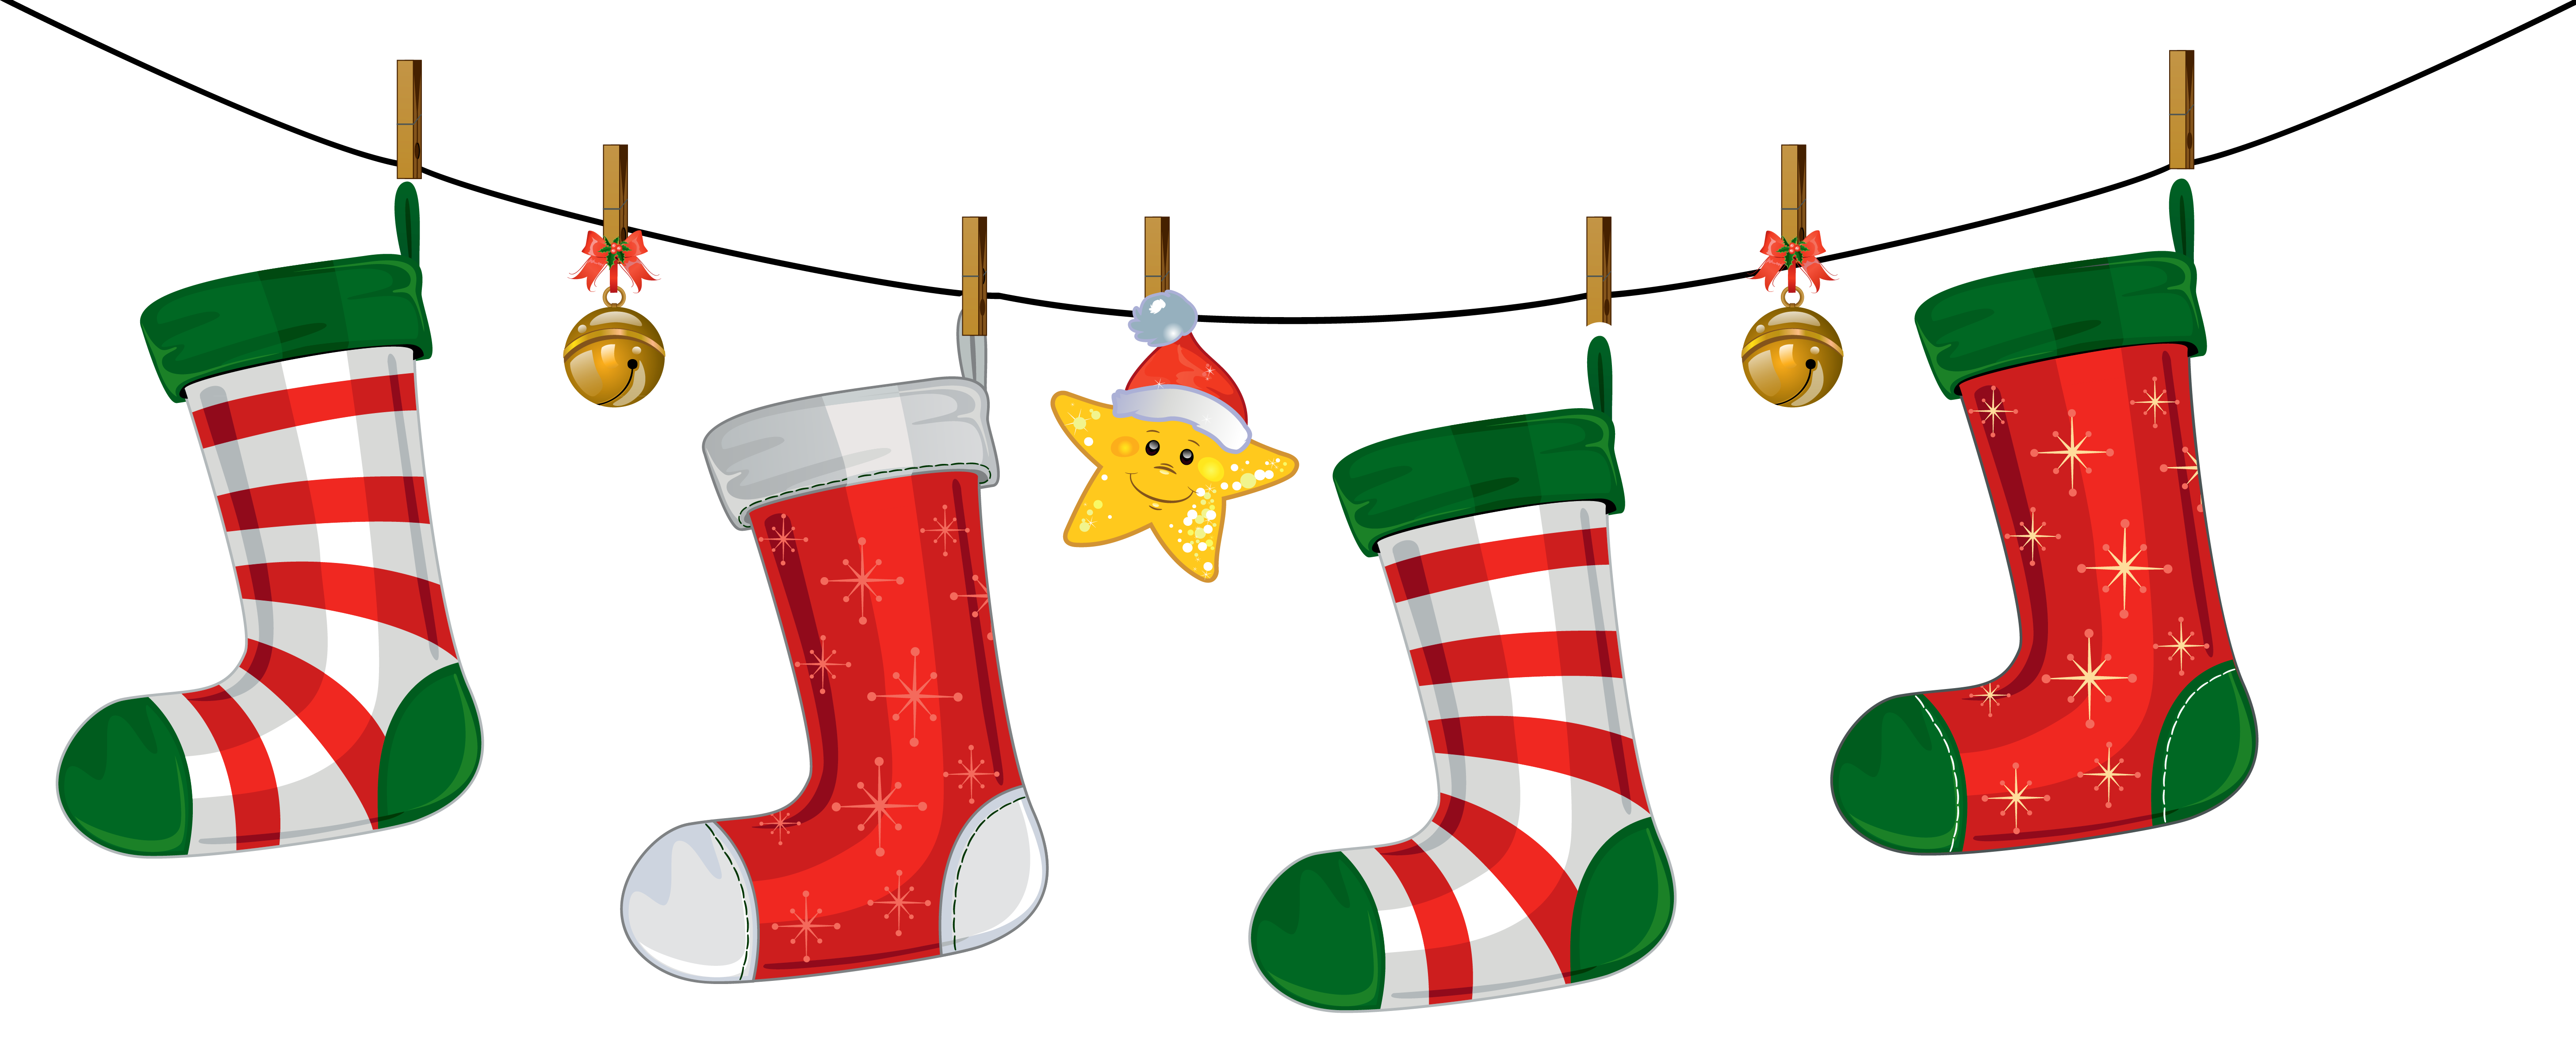 Transparent Christmas Stockings Decoration Png Clipart    Japoland